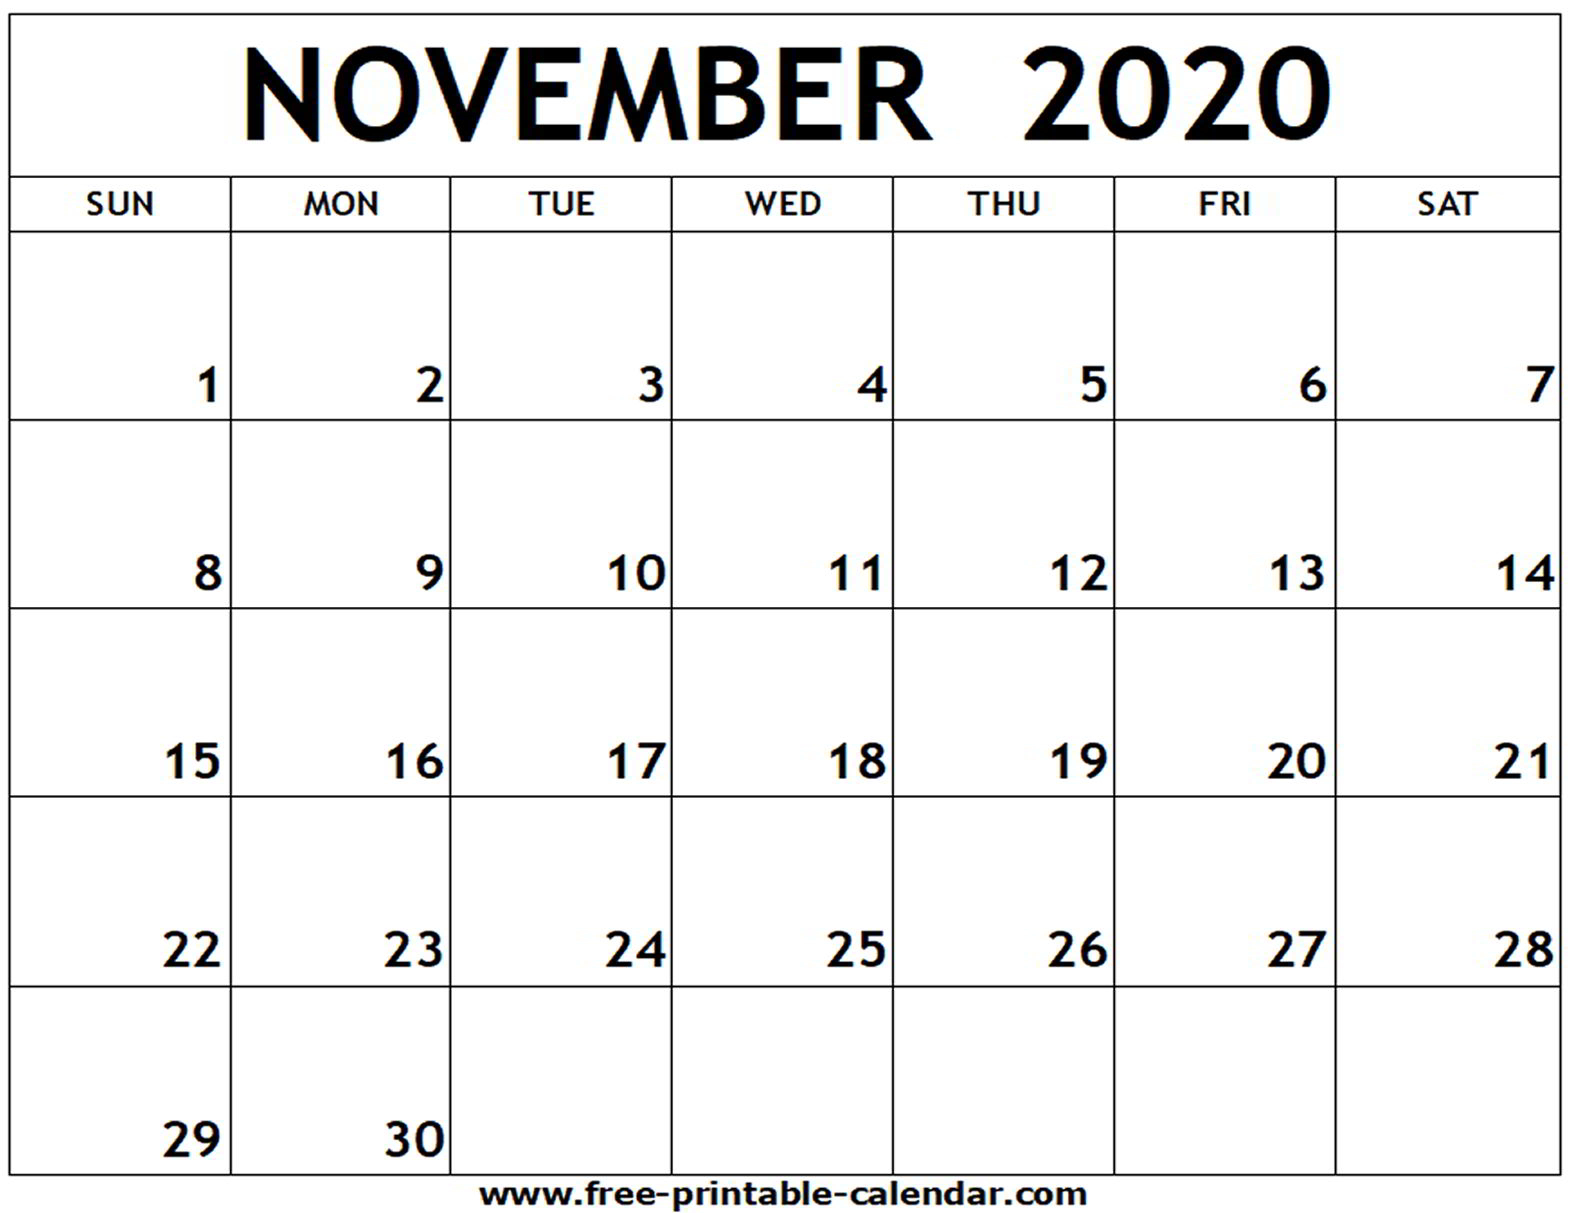 November 2020 Calendar Holidays Printable - Teke.wpart.co